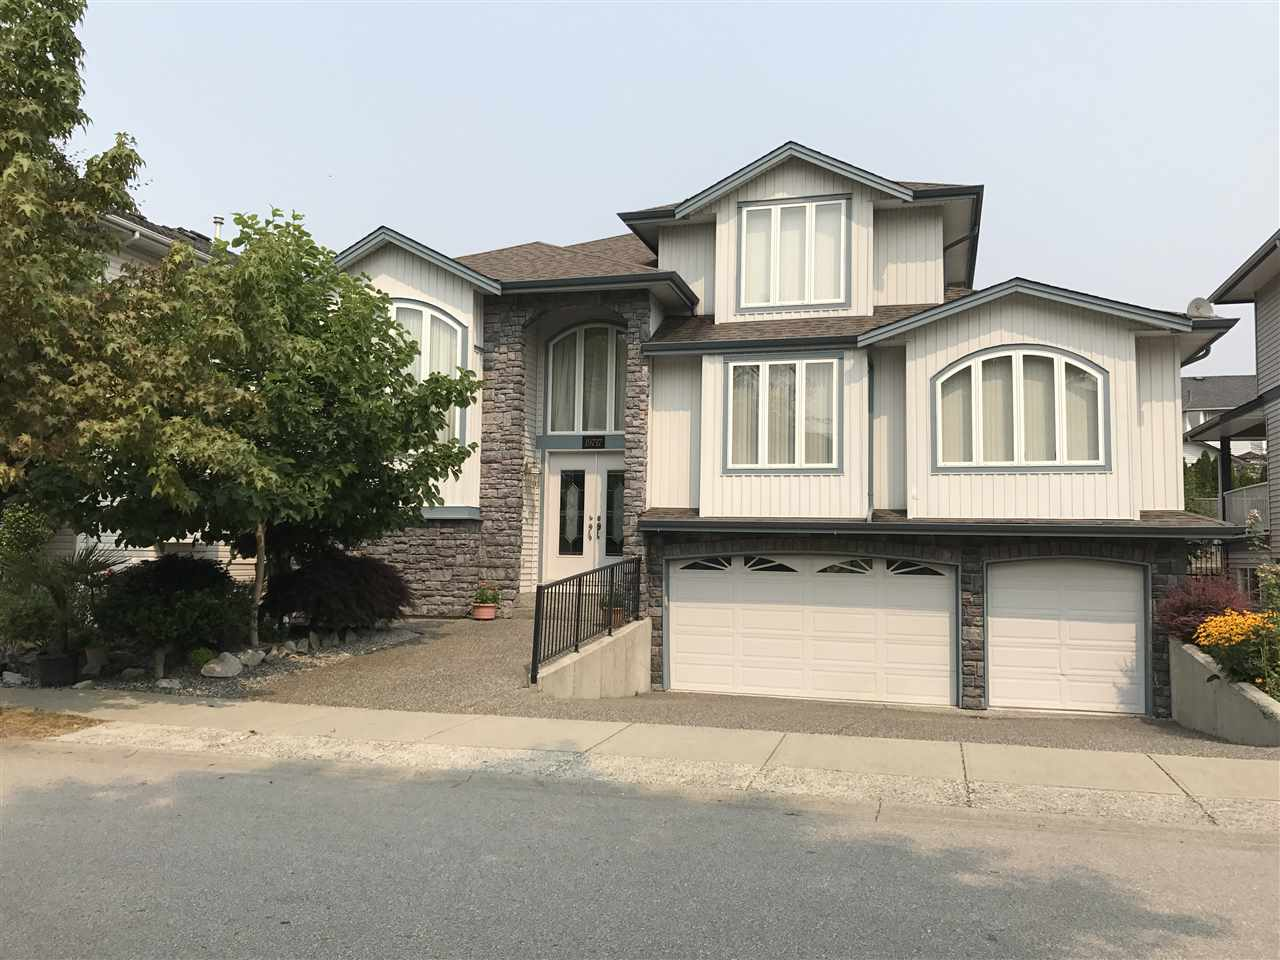 Main Photo: 19717 JOYNER Place in Pitt Meadows: South Meadows House for sale : MLS® # R2195045